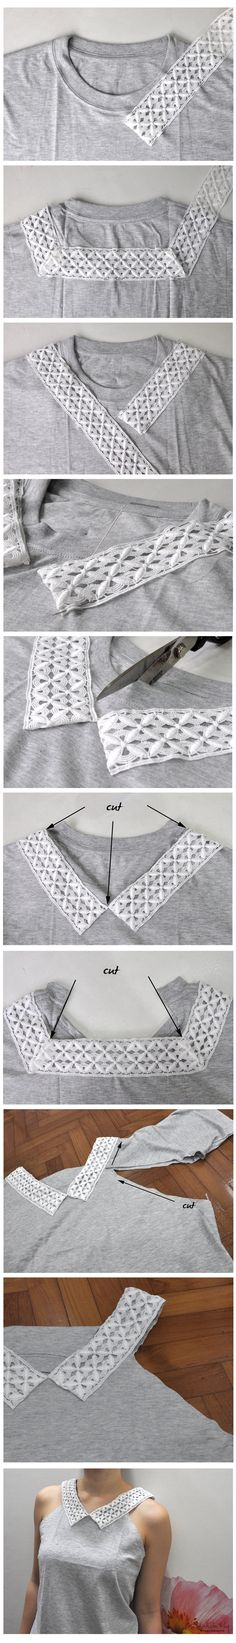 DIY Tee Shirt Upcycle-I like the theory behind this but not the exact design.